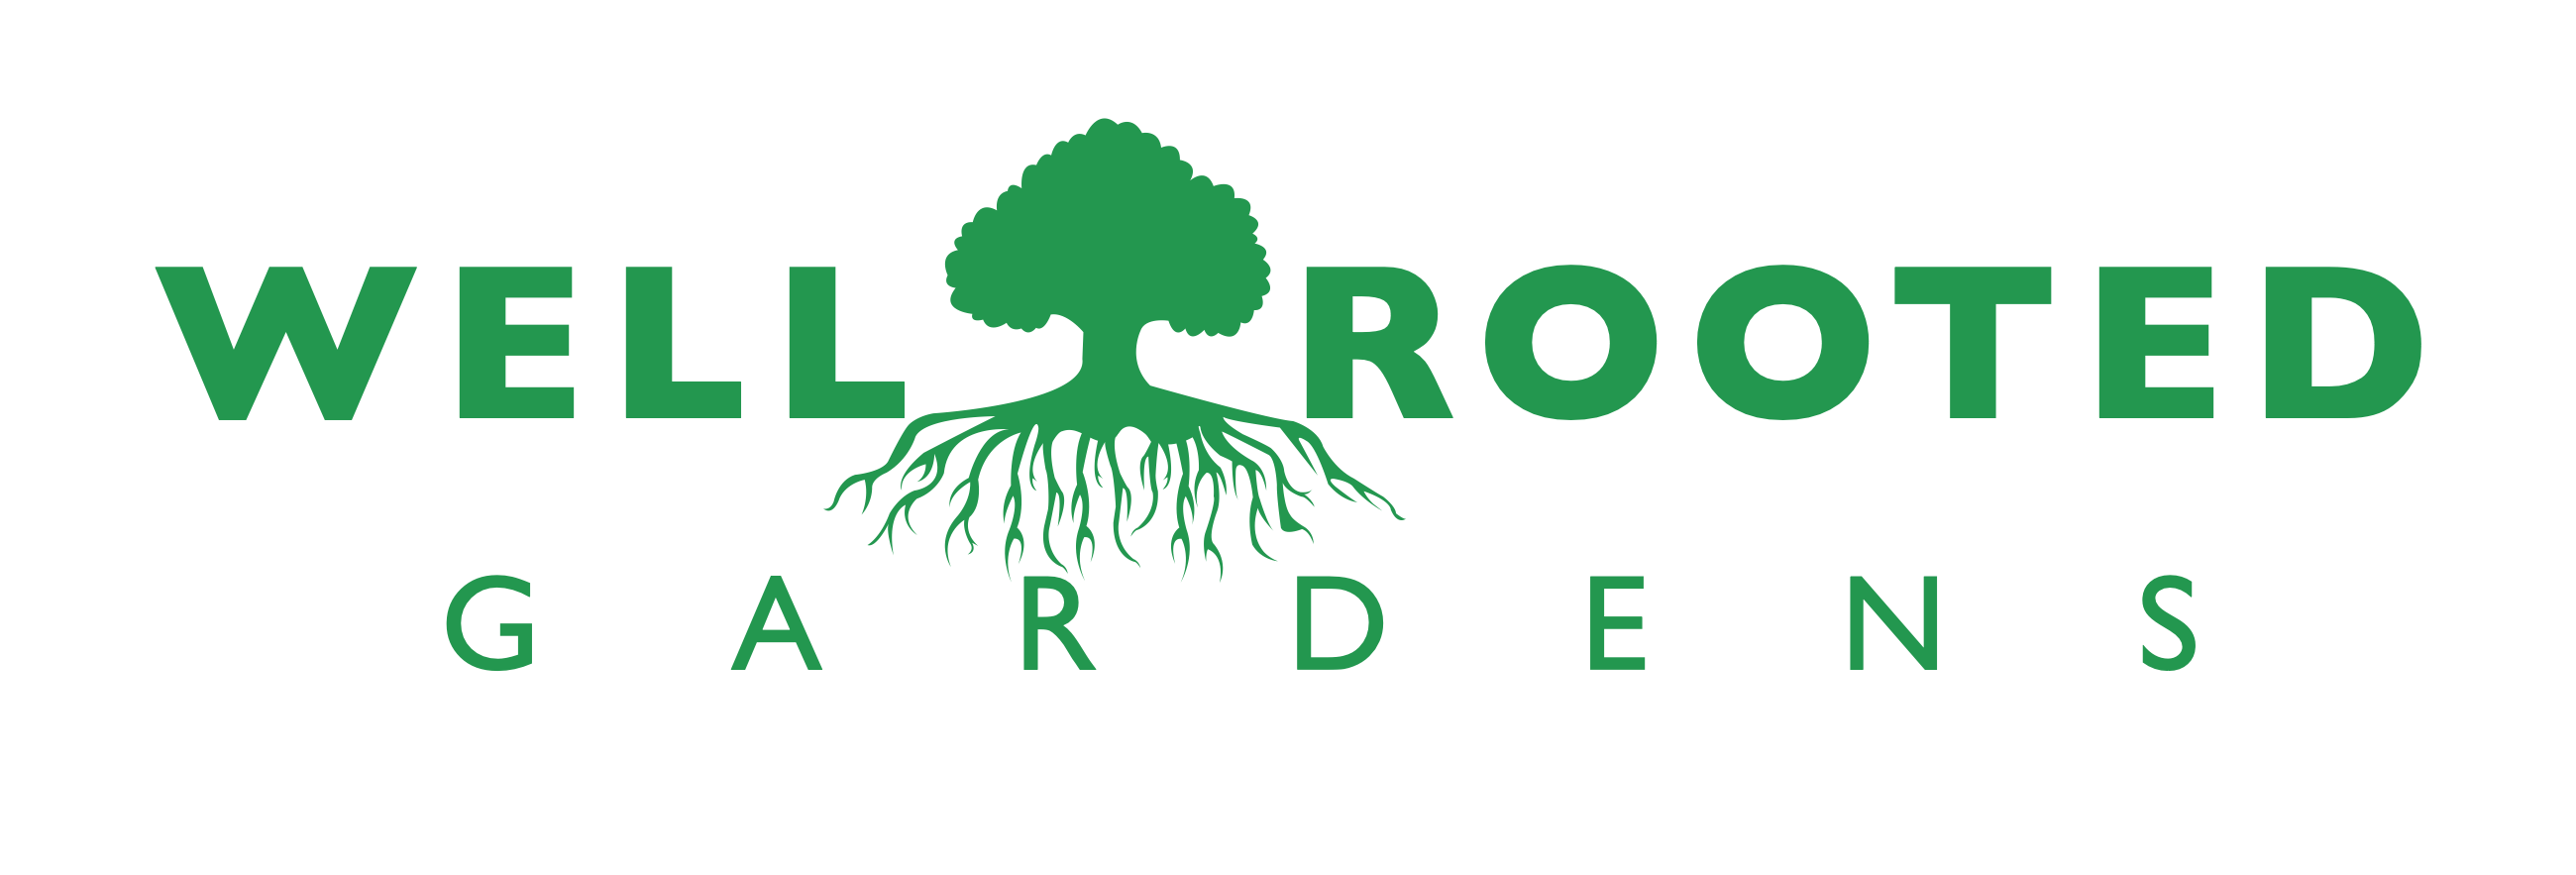 Well Rooted Gardens